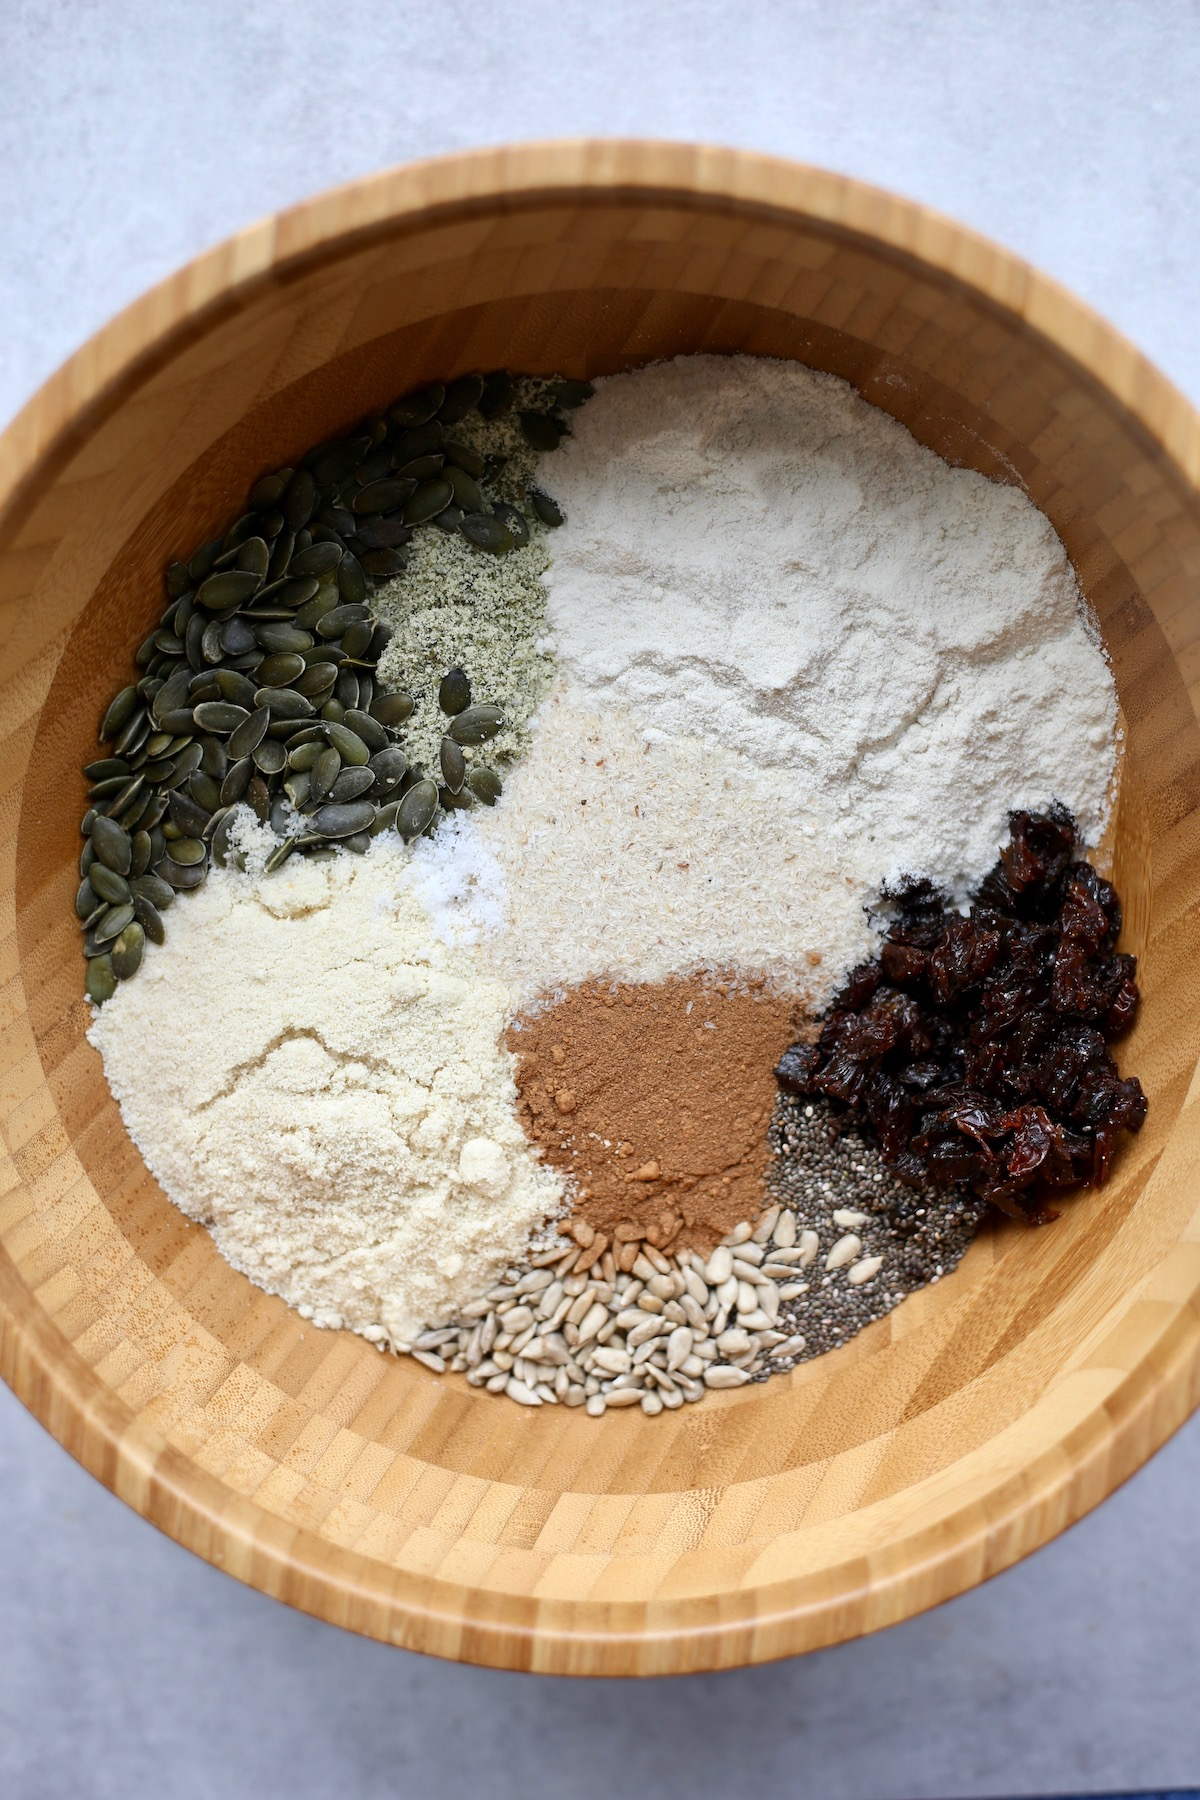 All the dry ingredients you'll need to make gluten-free cinnamon raisin seed bread in a large mixing bowl